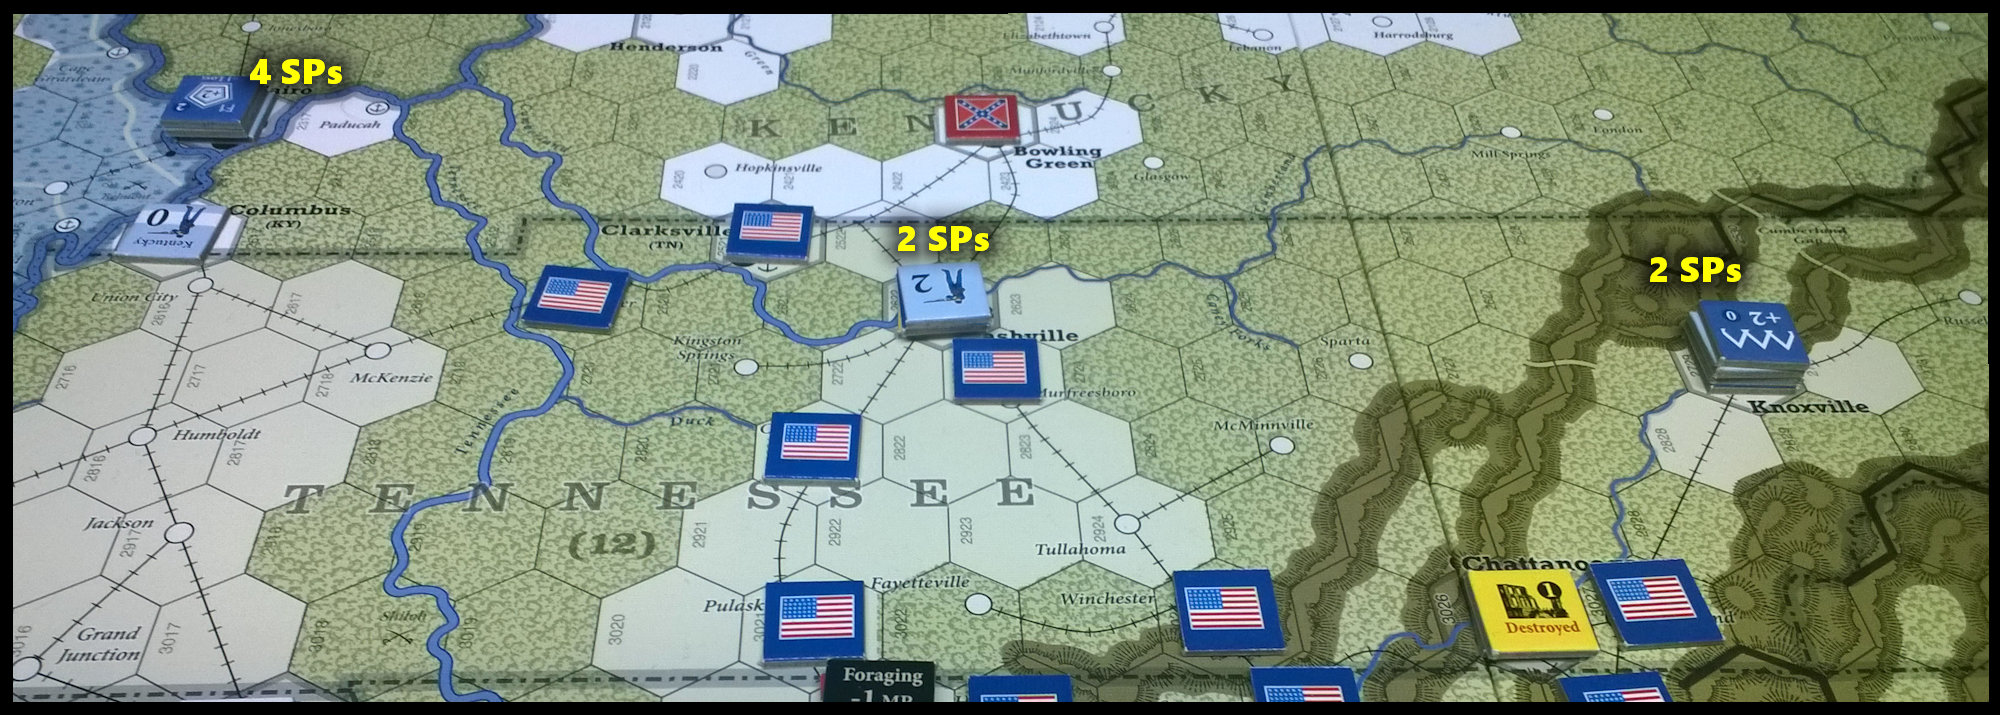 The U.S. Civil War: The Western Theater/Tennessee at the end of Game Turn 8